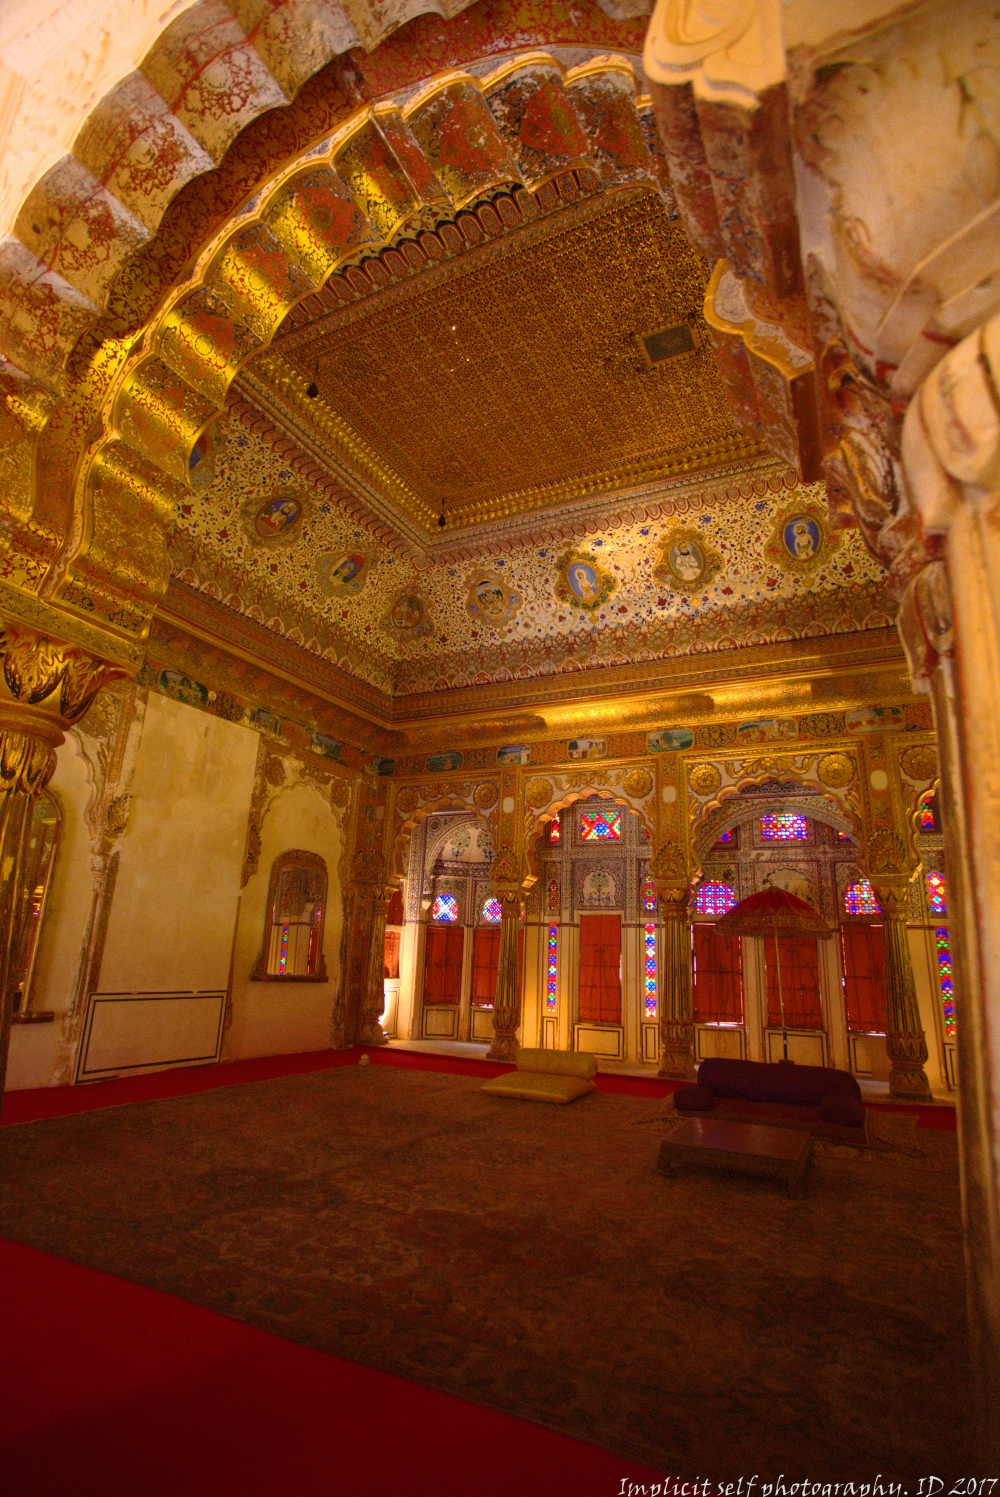 Phool Mahal interiornew wm